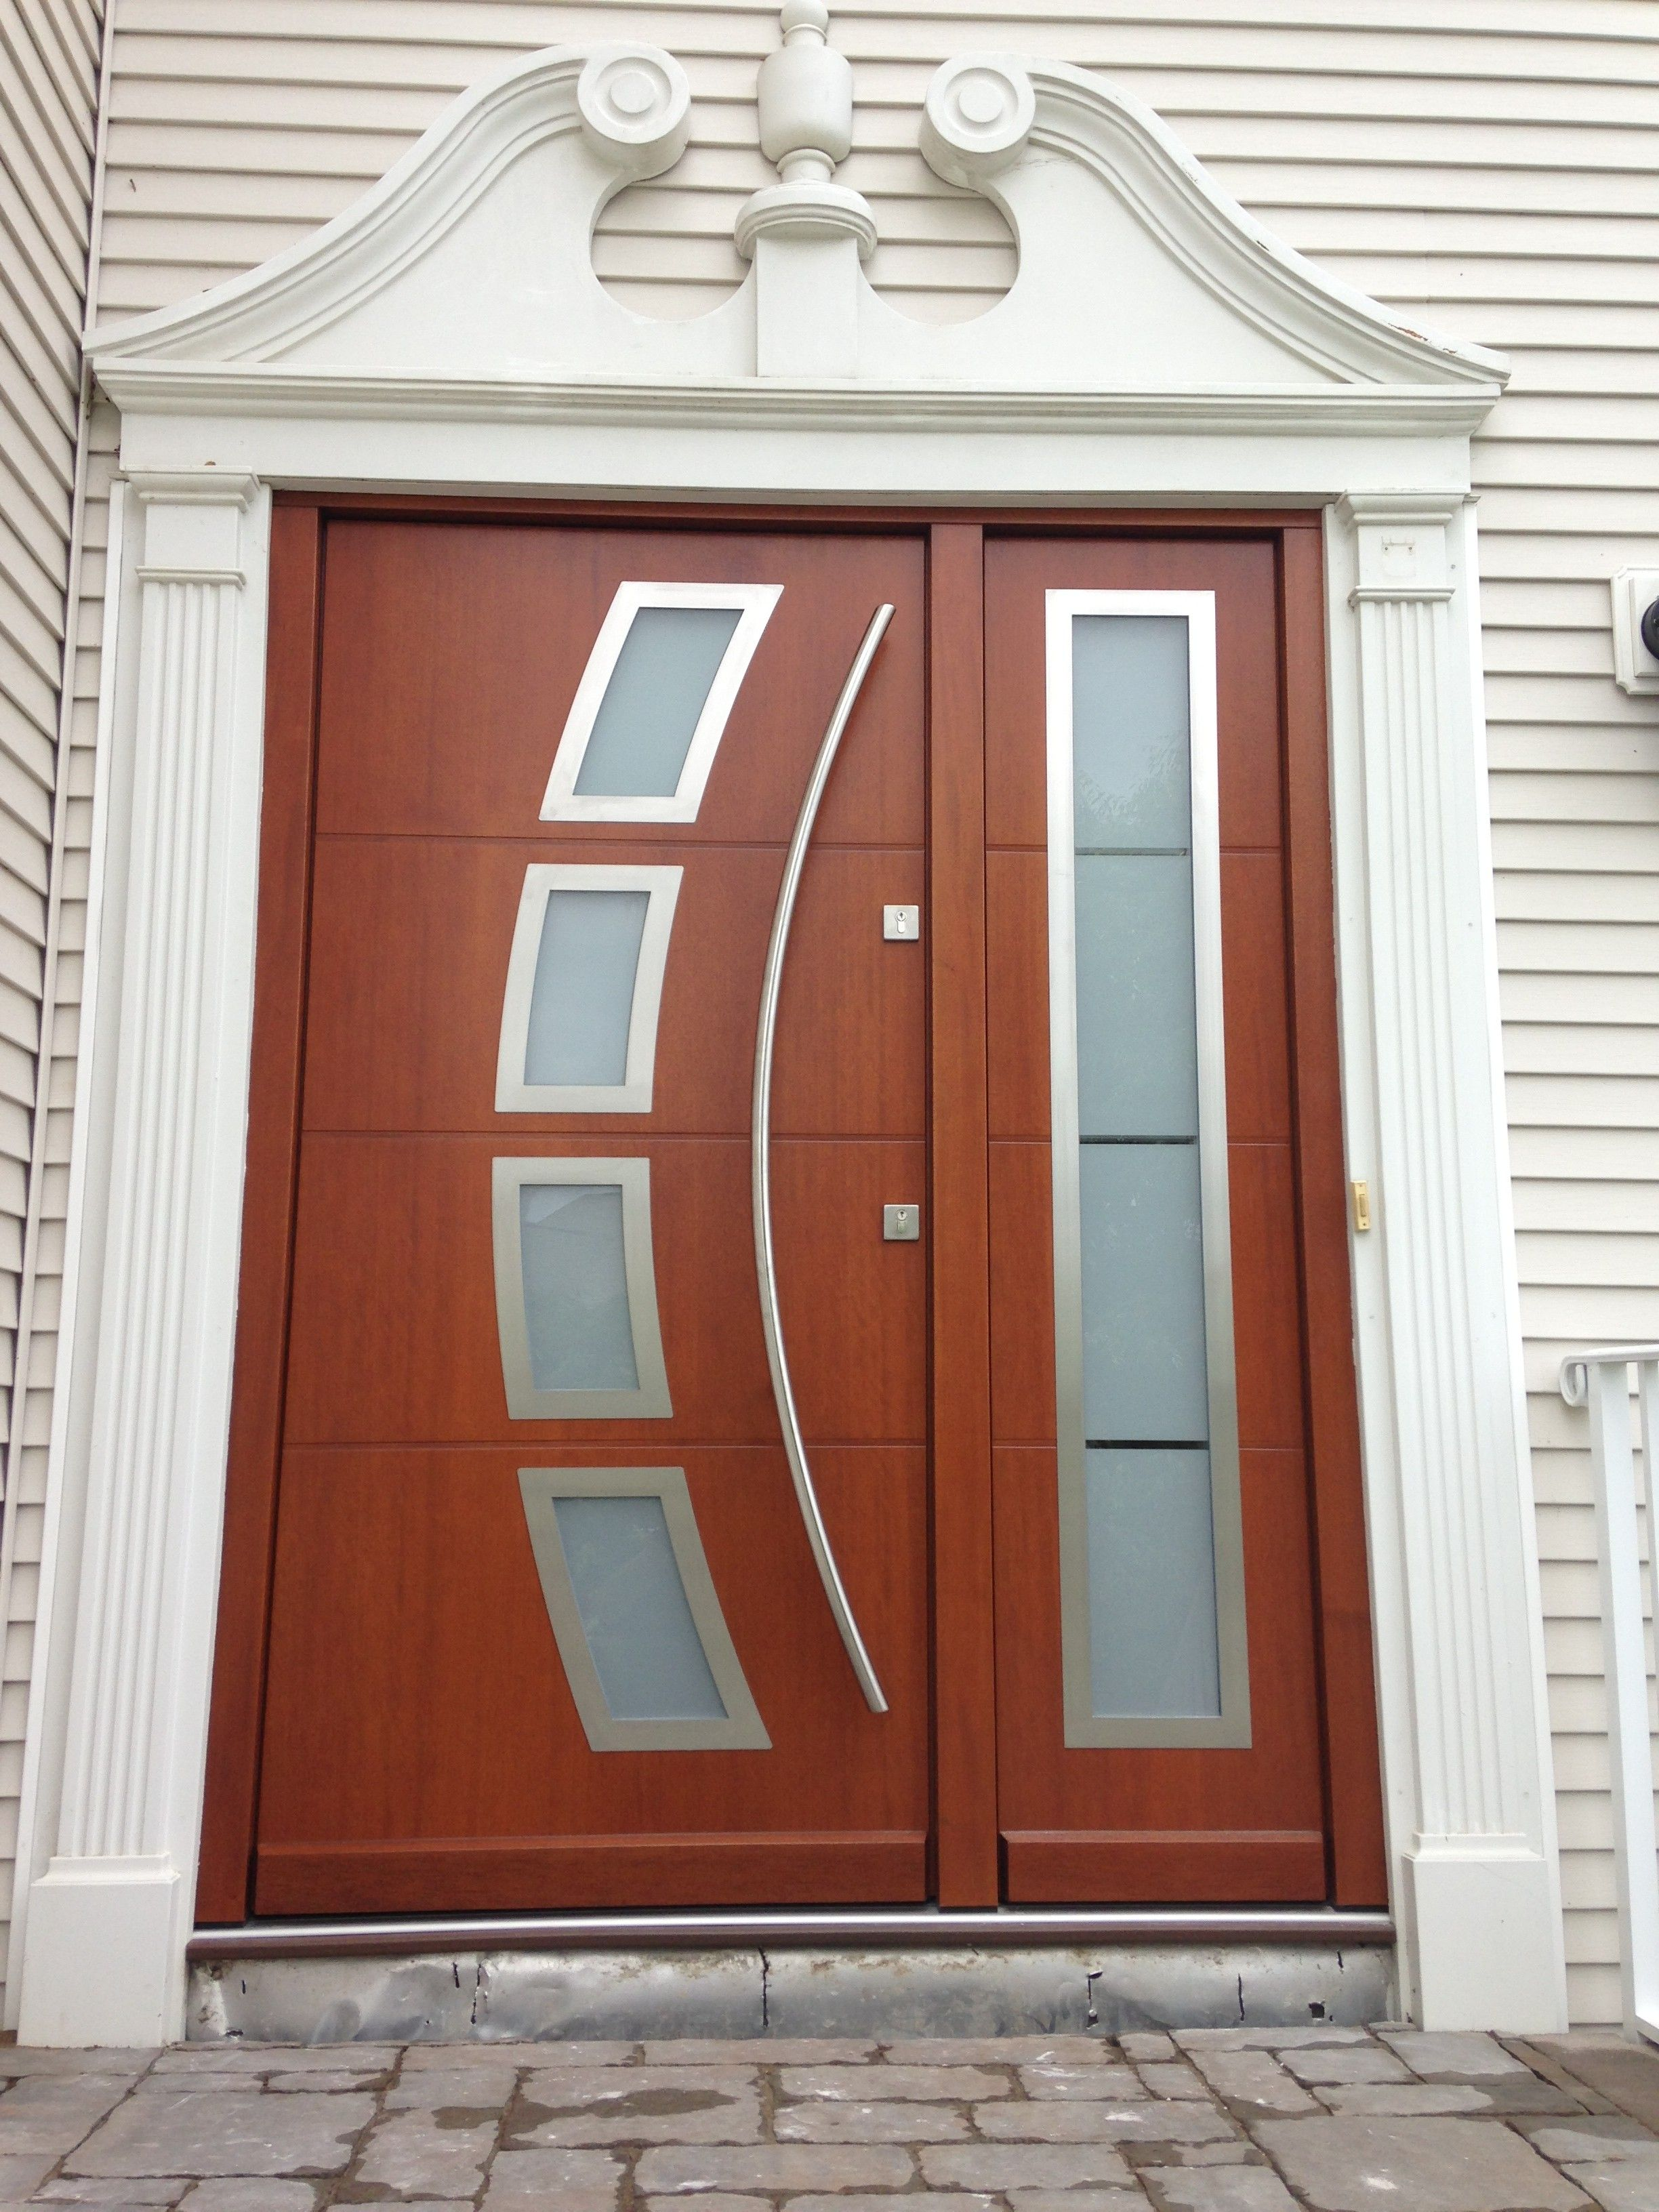 This Unique Front Door Throws A Twist On A Classic Design